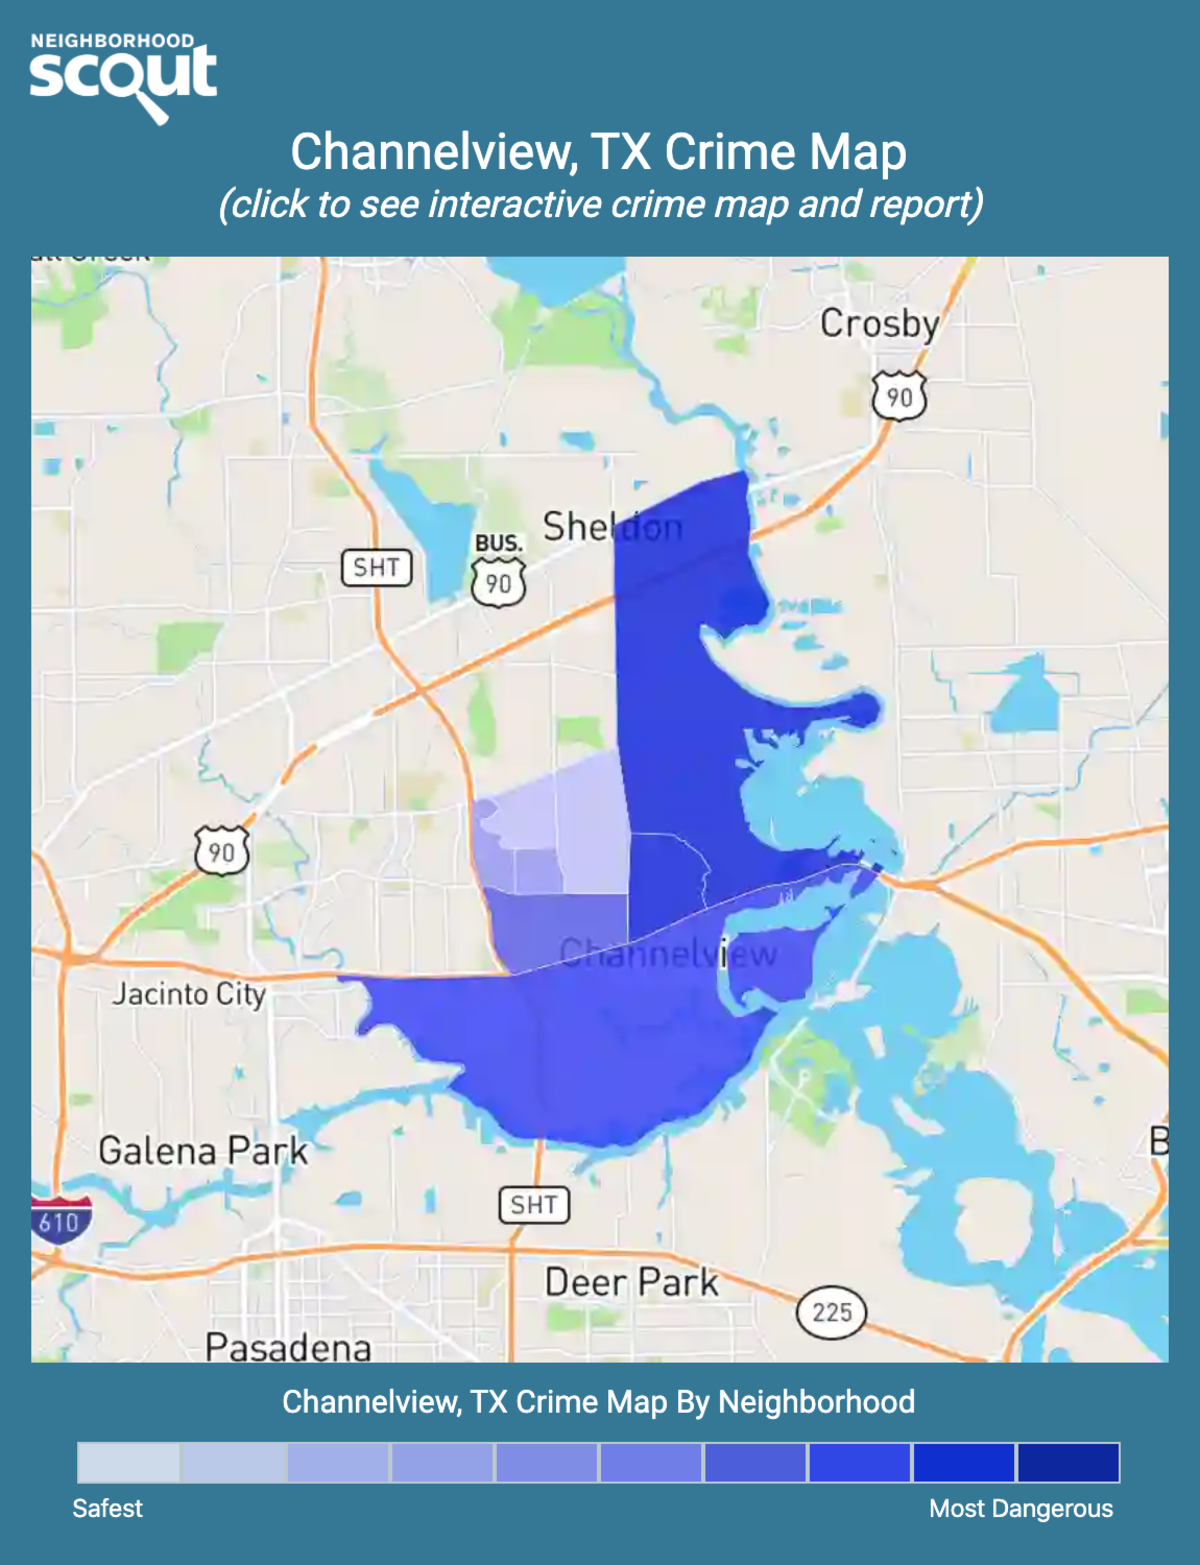 Channelview, Texas crime map